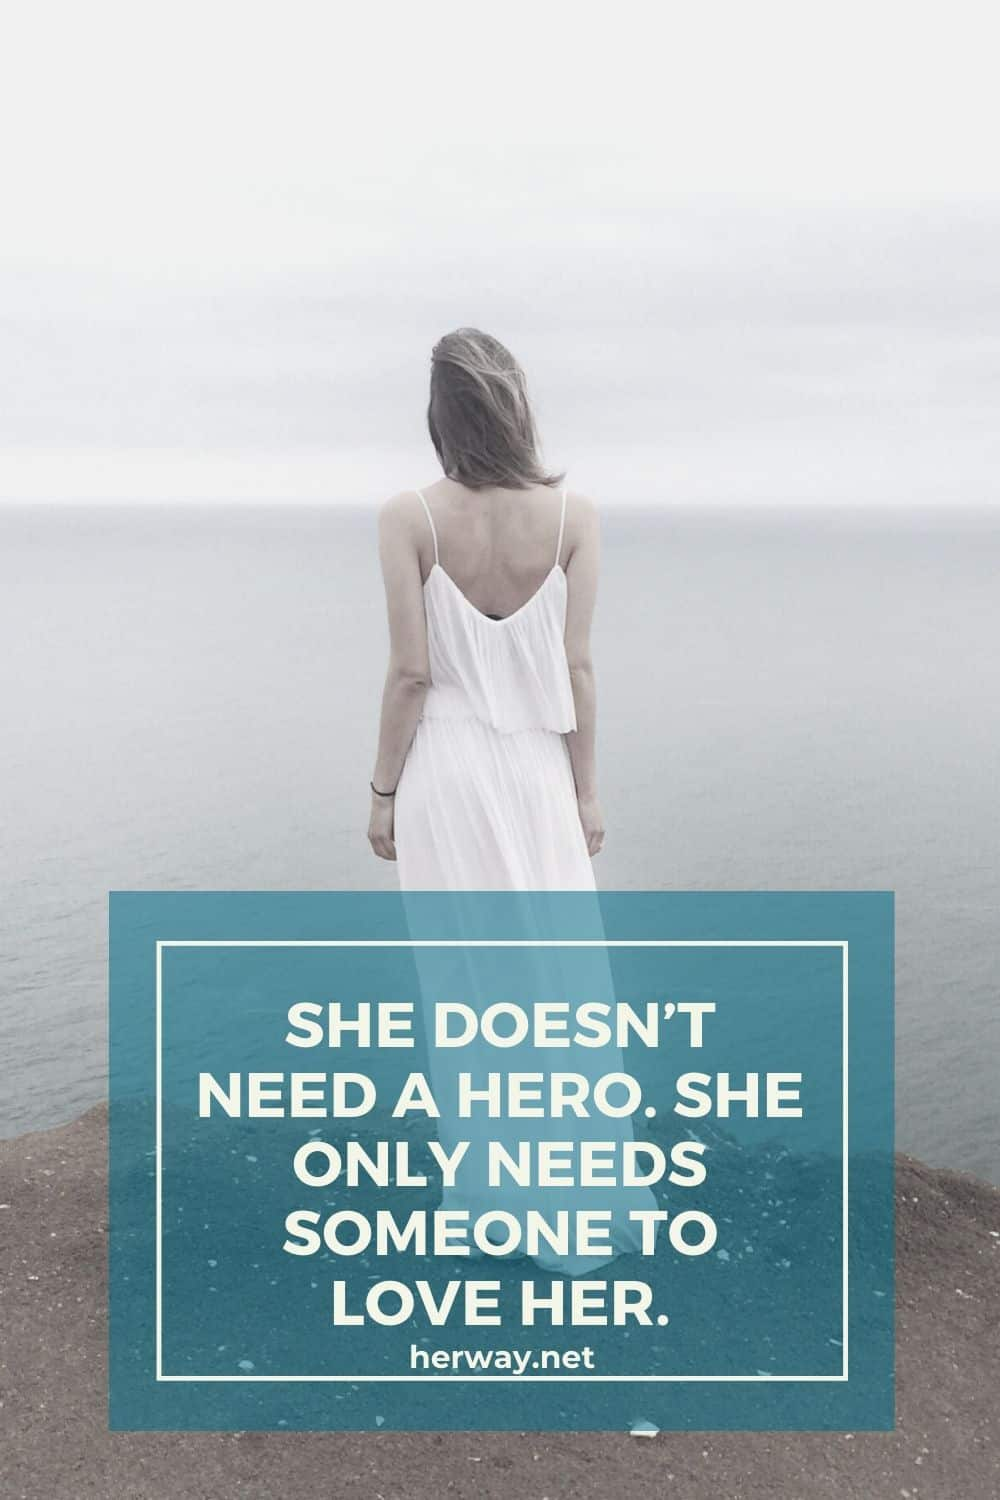 SHE DOESN'T NEED A HERO. SHE ONLY NEEDS SOMEONE TO LOVE HER.